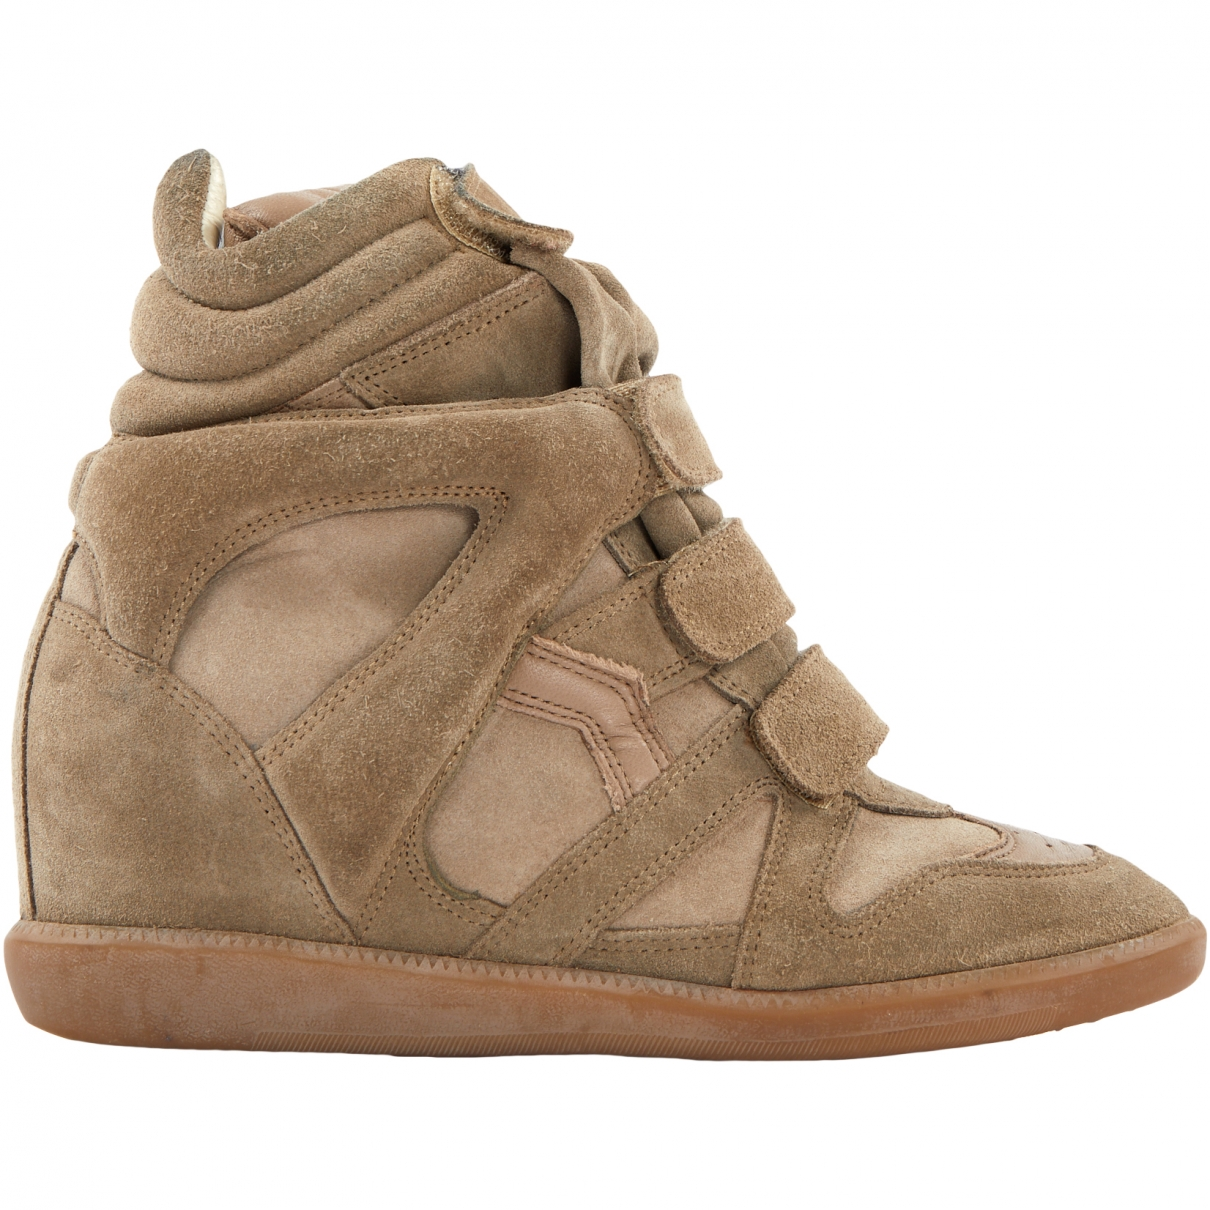 Isabel Marant Bayley Beige Suede Trainers for Women 40 EU